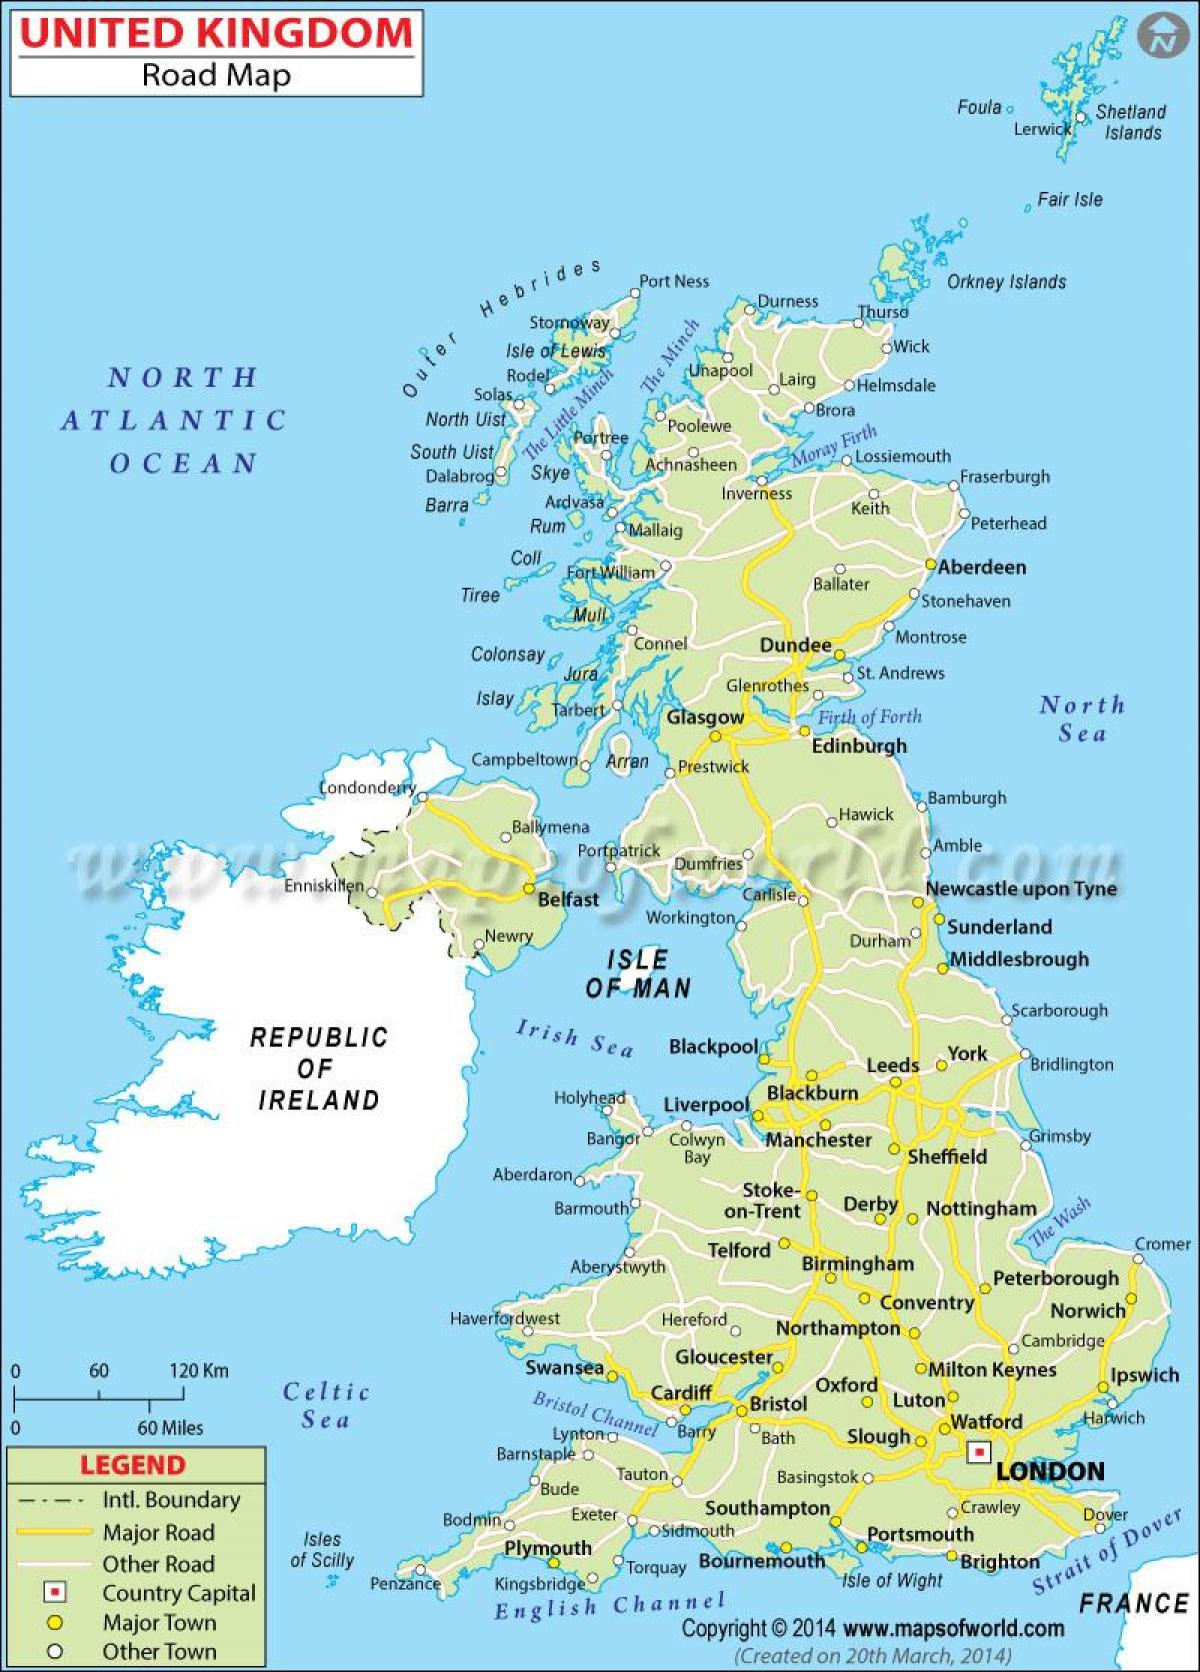 the United Kingdom map